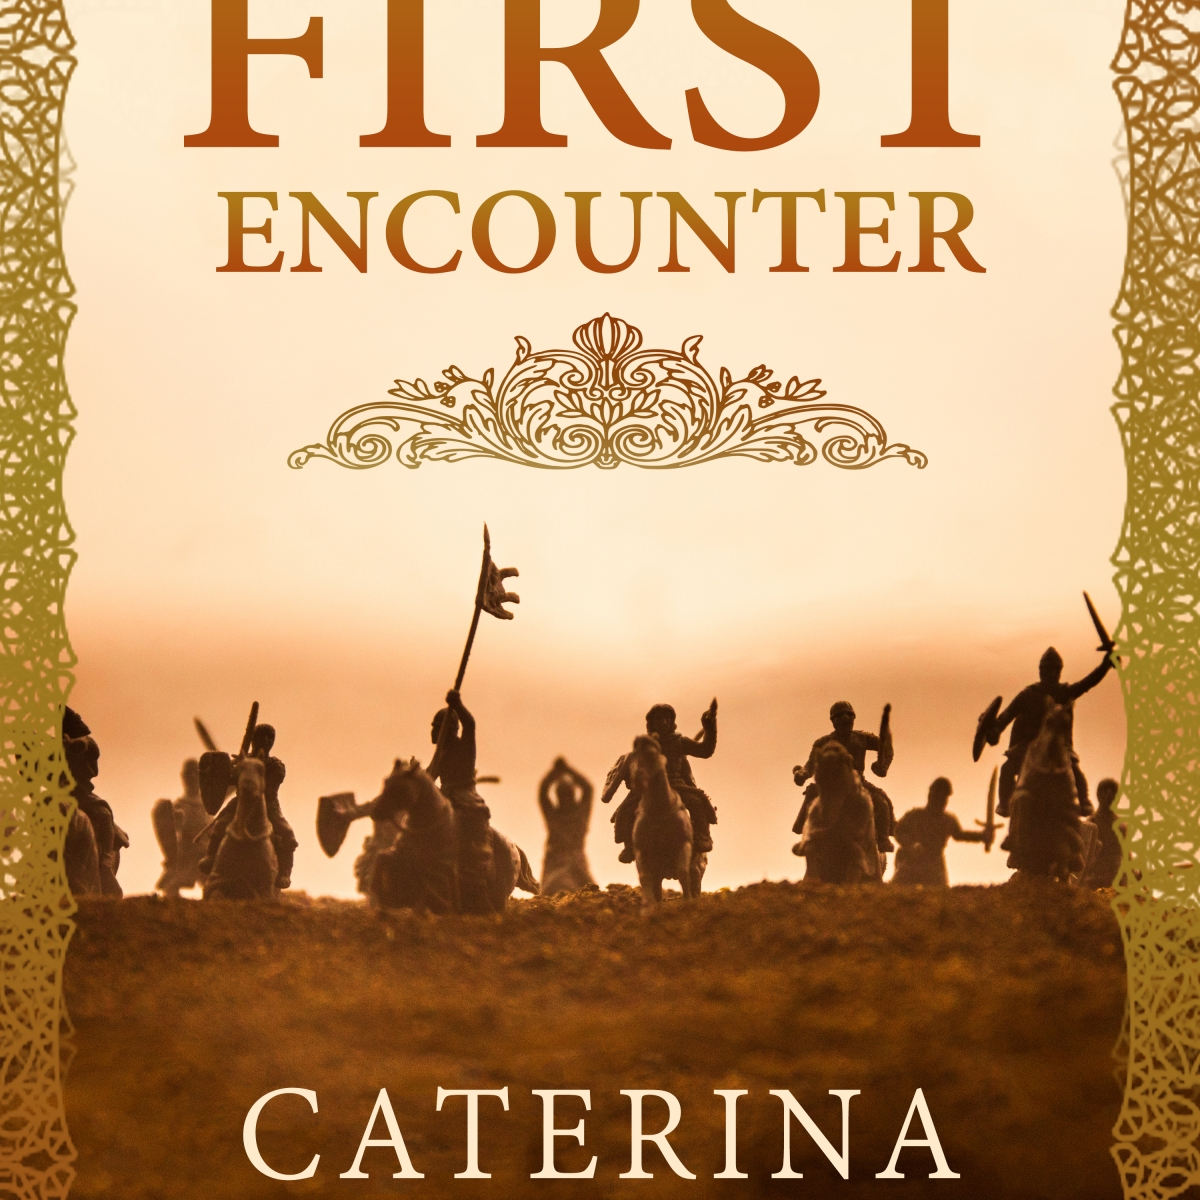 The First Encounter Book Cover featuring mounted knights with weapons raised.